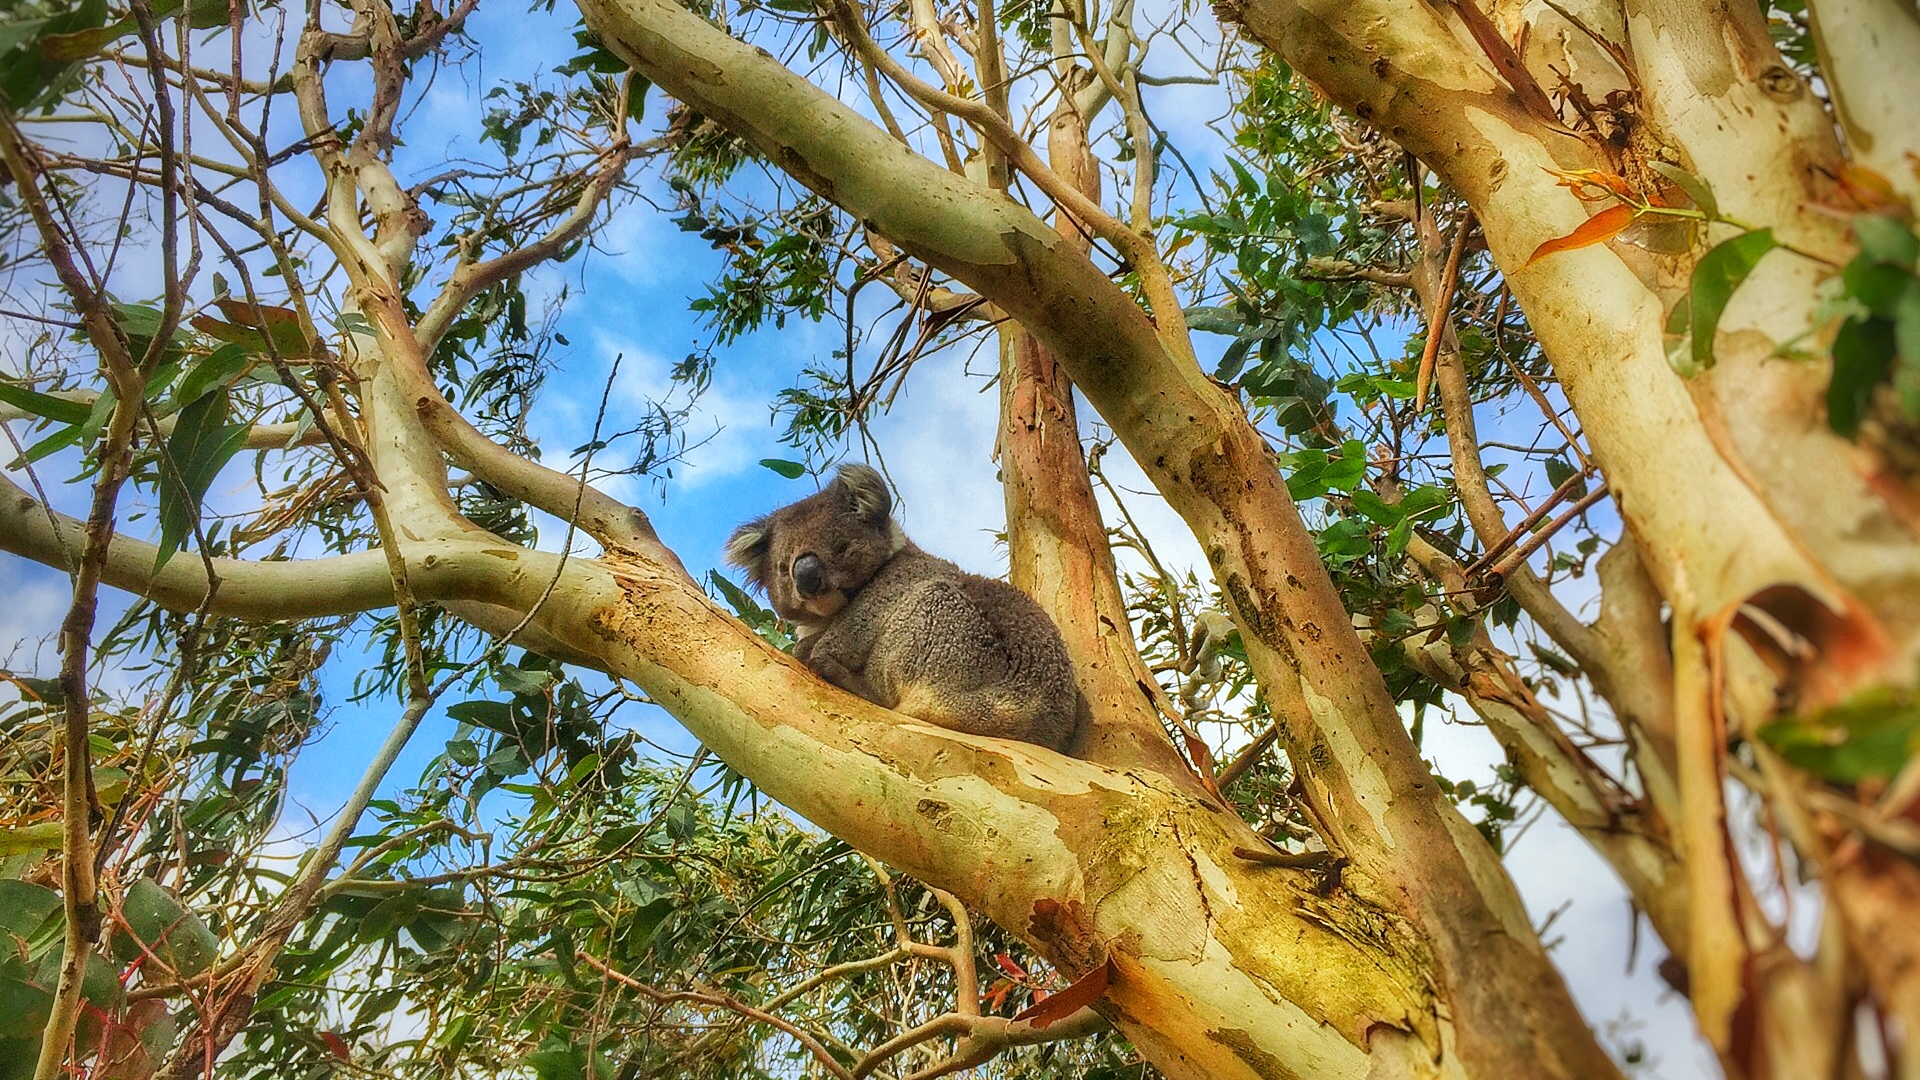 Studio Garden View of Koala